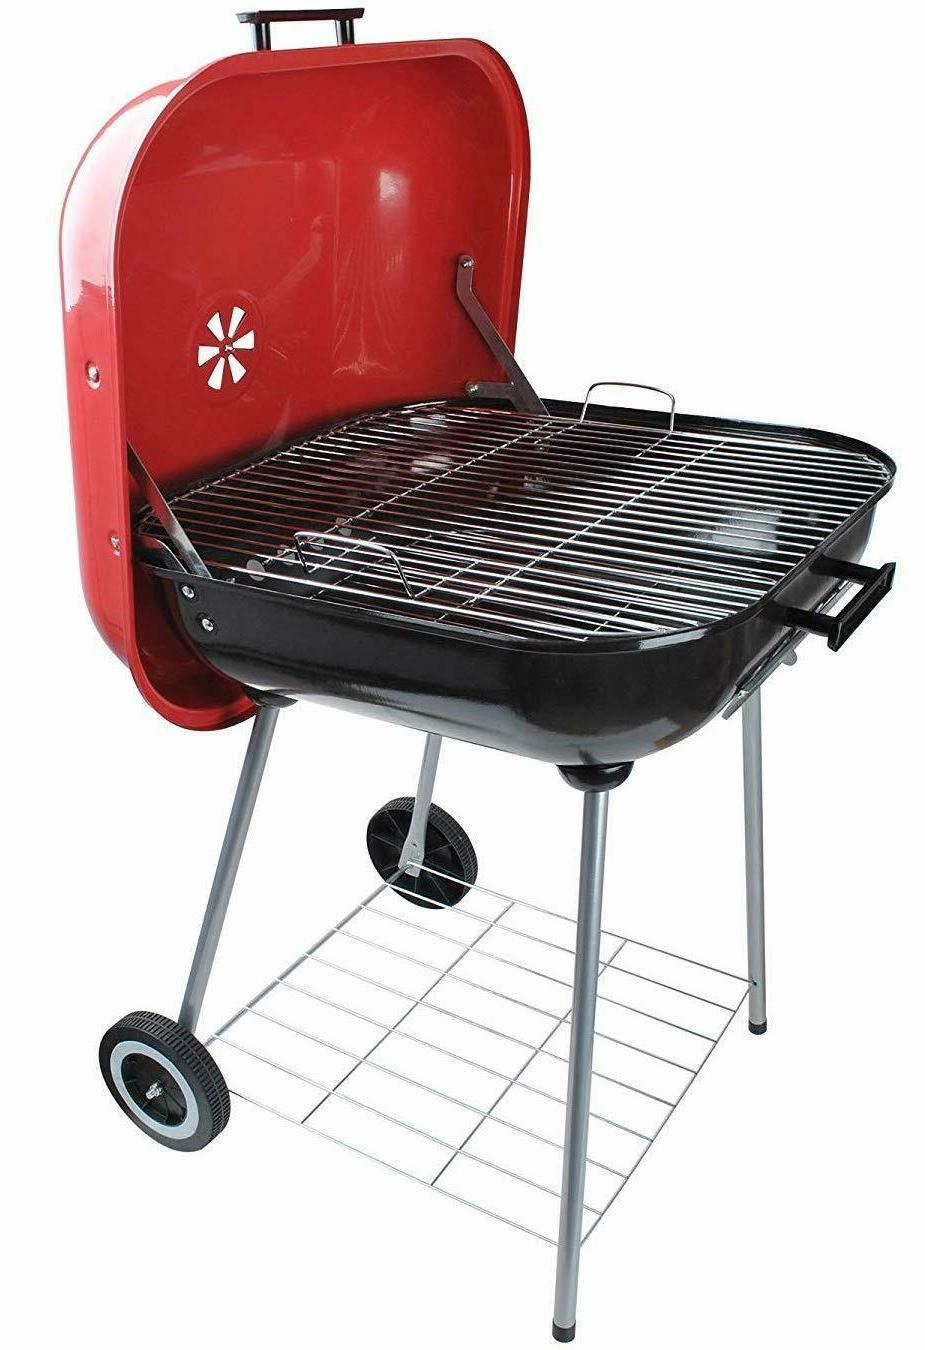 new classic large square 25x25 charcoal barbecue